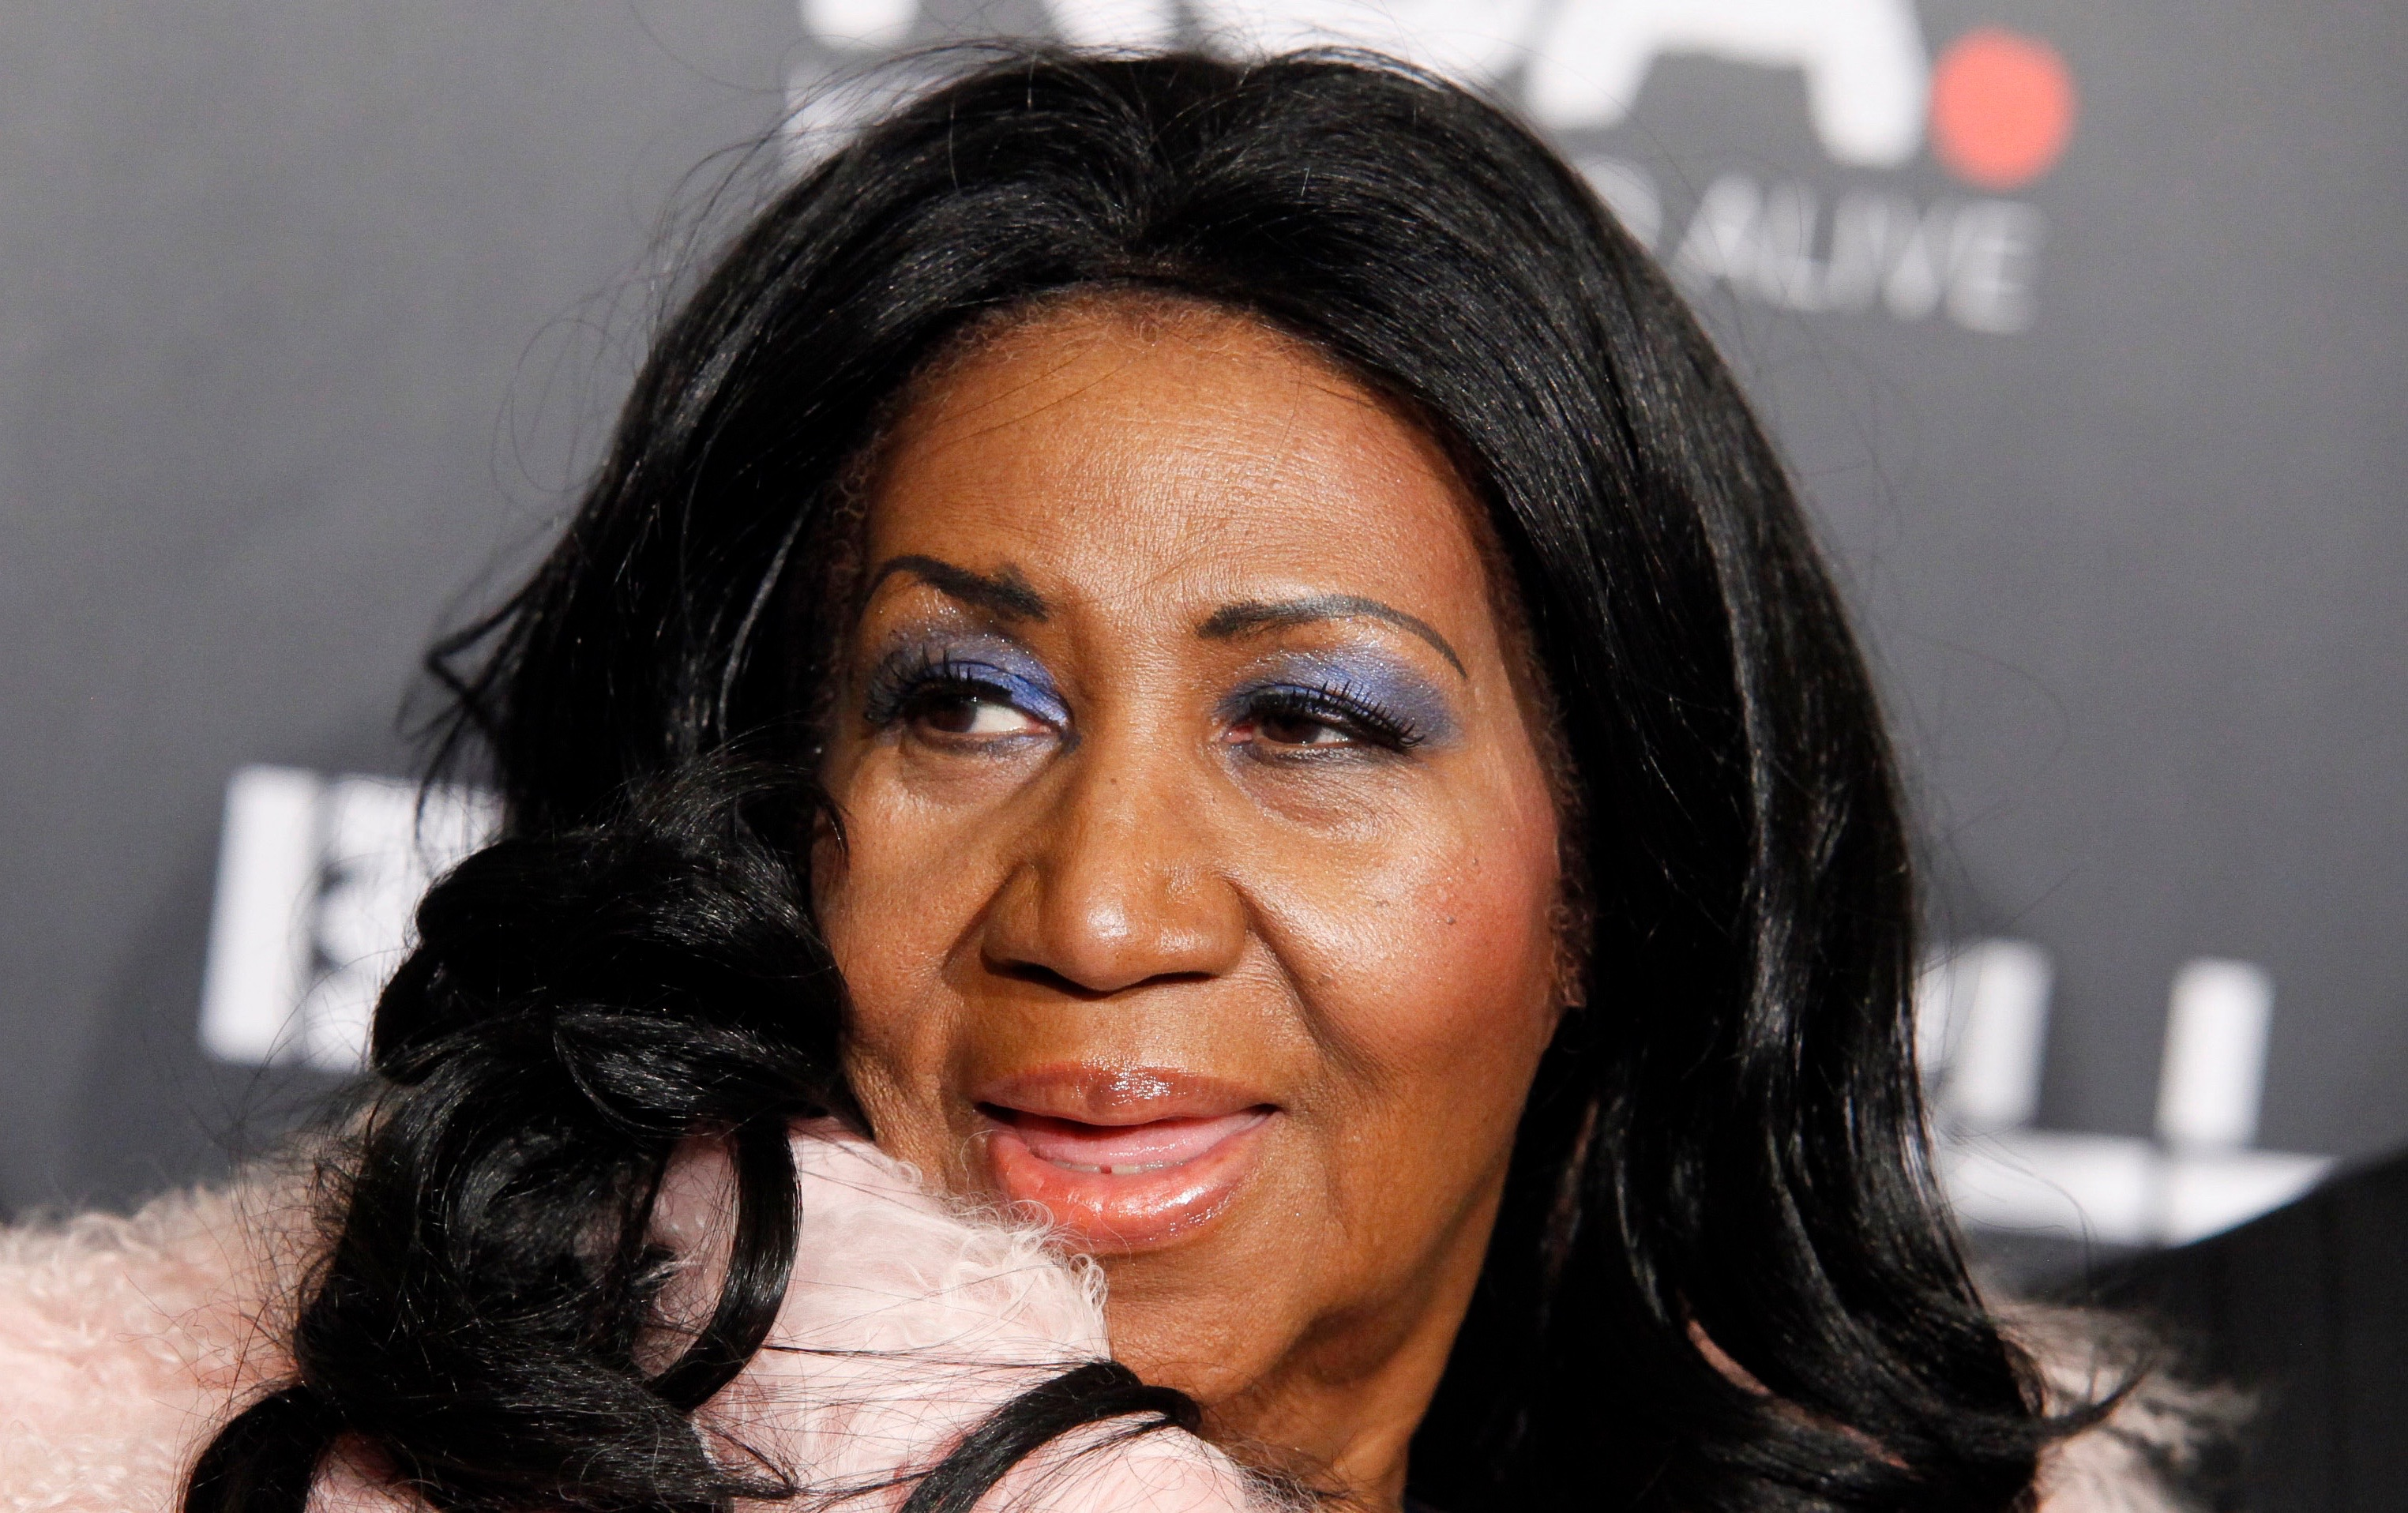 Aretha Franklin attends Keep a Child Aliveís 2014 Black Ball at the Hammerstein Ballroom on Thursday, Oct. 30, 2014, in New York. (Photo by Andy Kropa/Invision/AP)